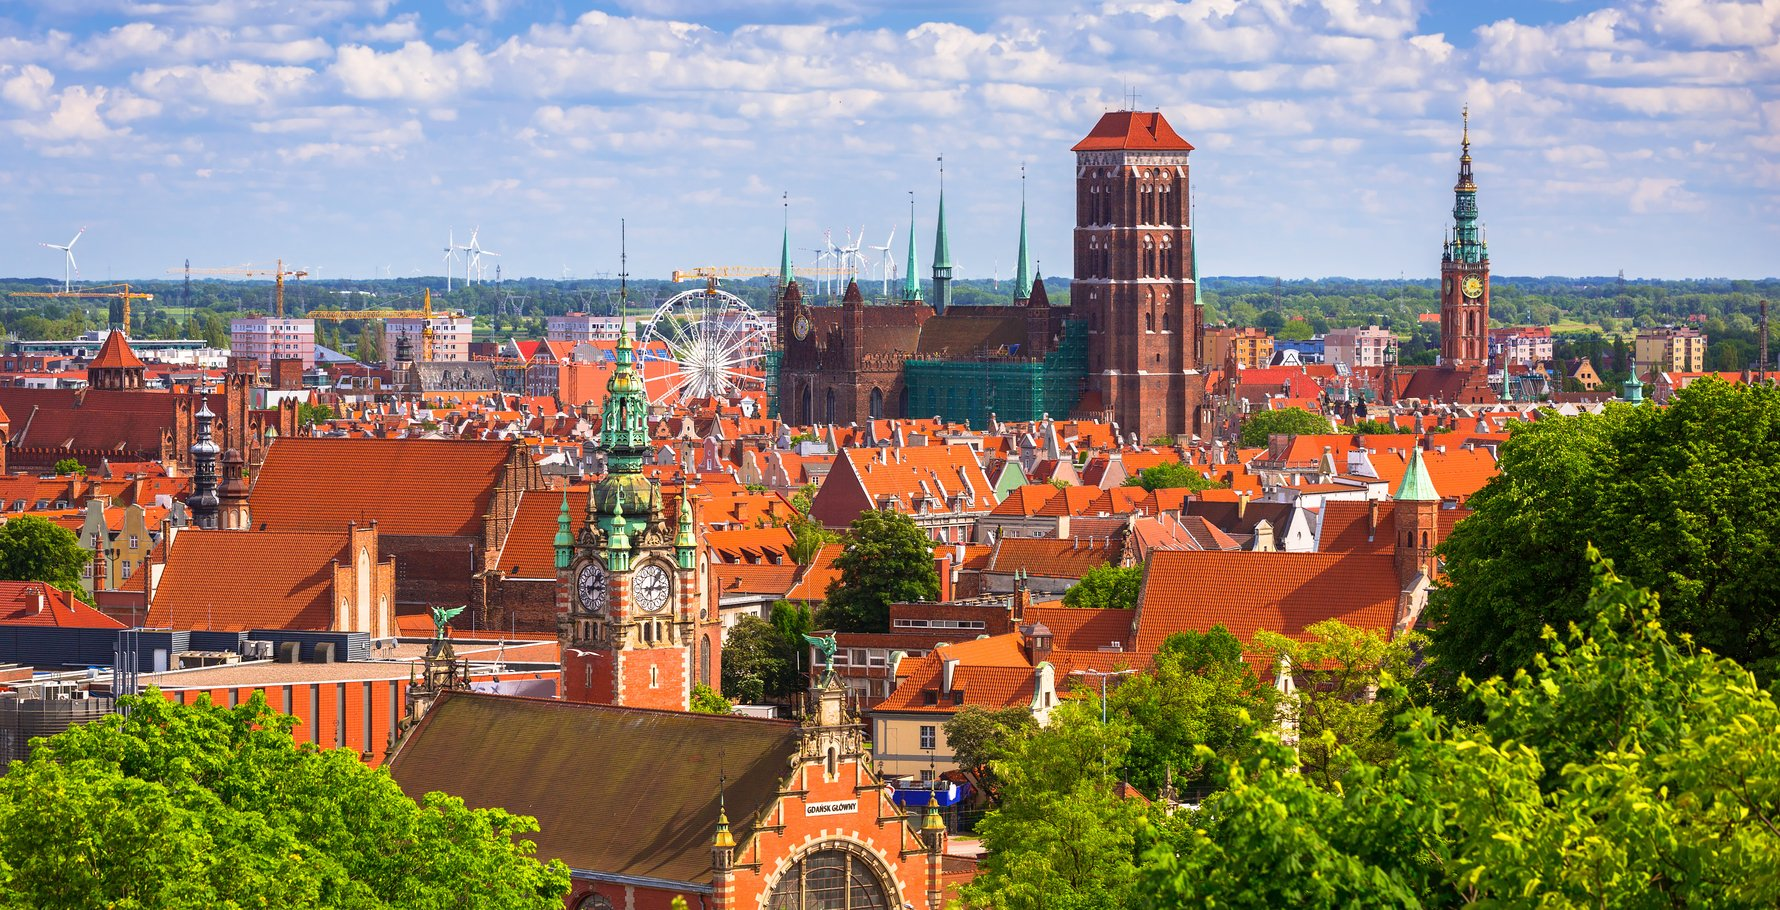 Gdańsk Old Town Panorama Photo by Patryk Kosmider